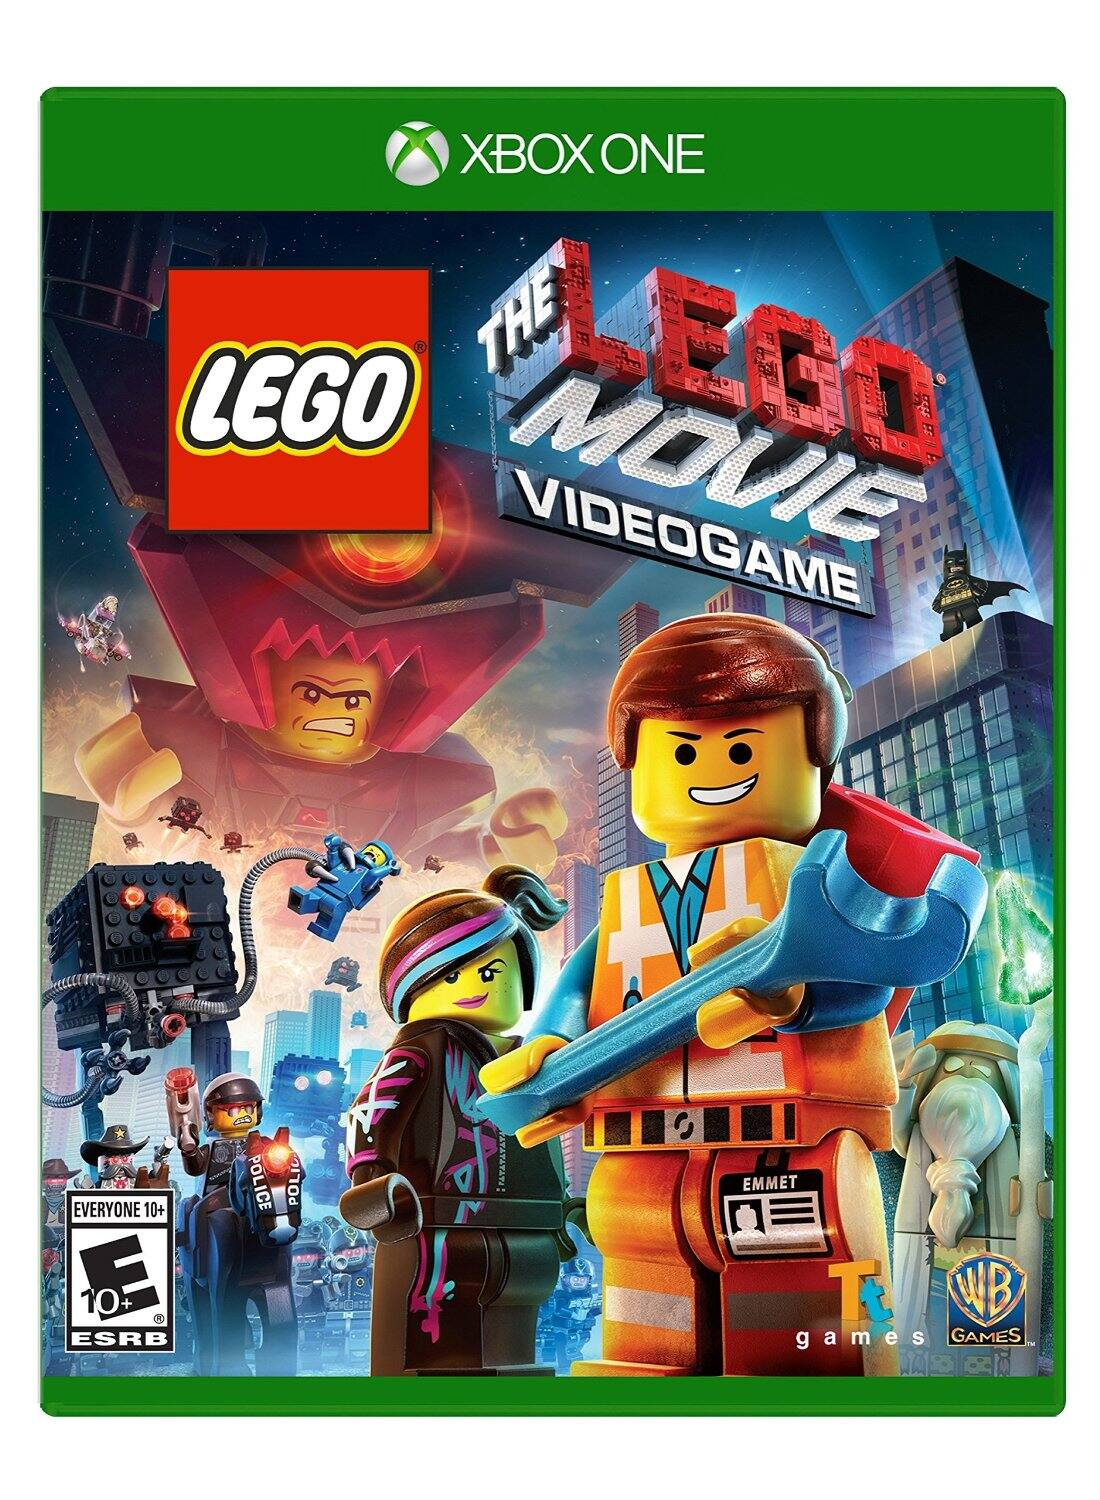 Xbox 360/One Digital Games: Madden NFL 16 $24, The LEGO Movie VG  $5 & More (Gold Membership Req.)